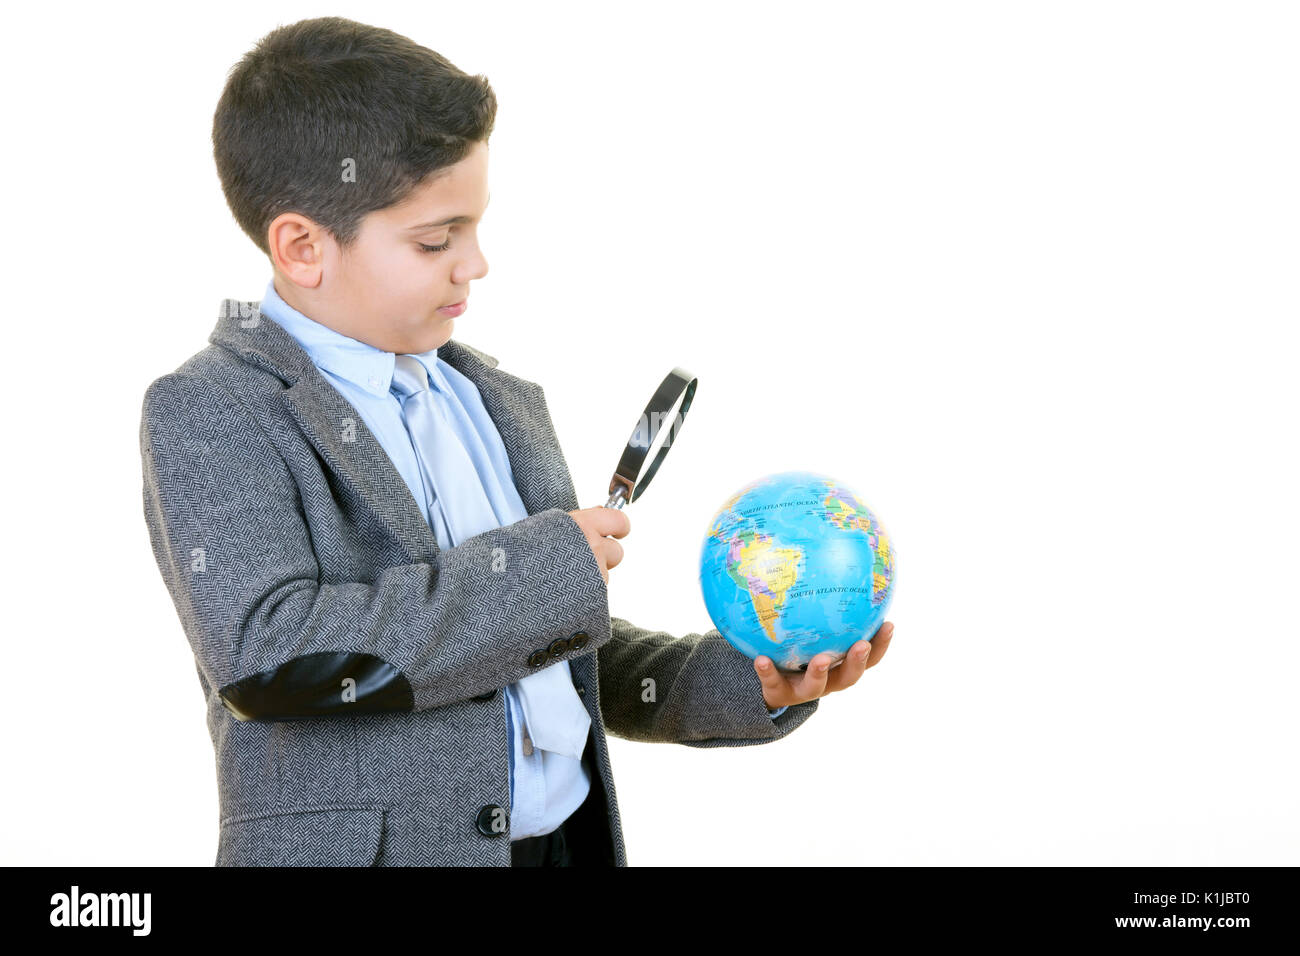 Little businessman is searching for new business opportunities with the help of his toy globe against white background. - Stock Image